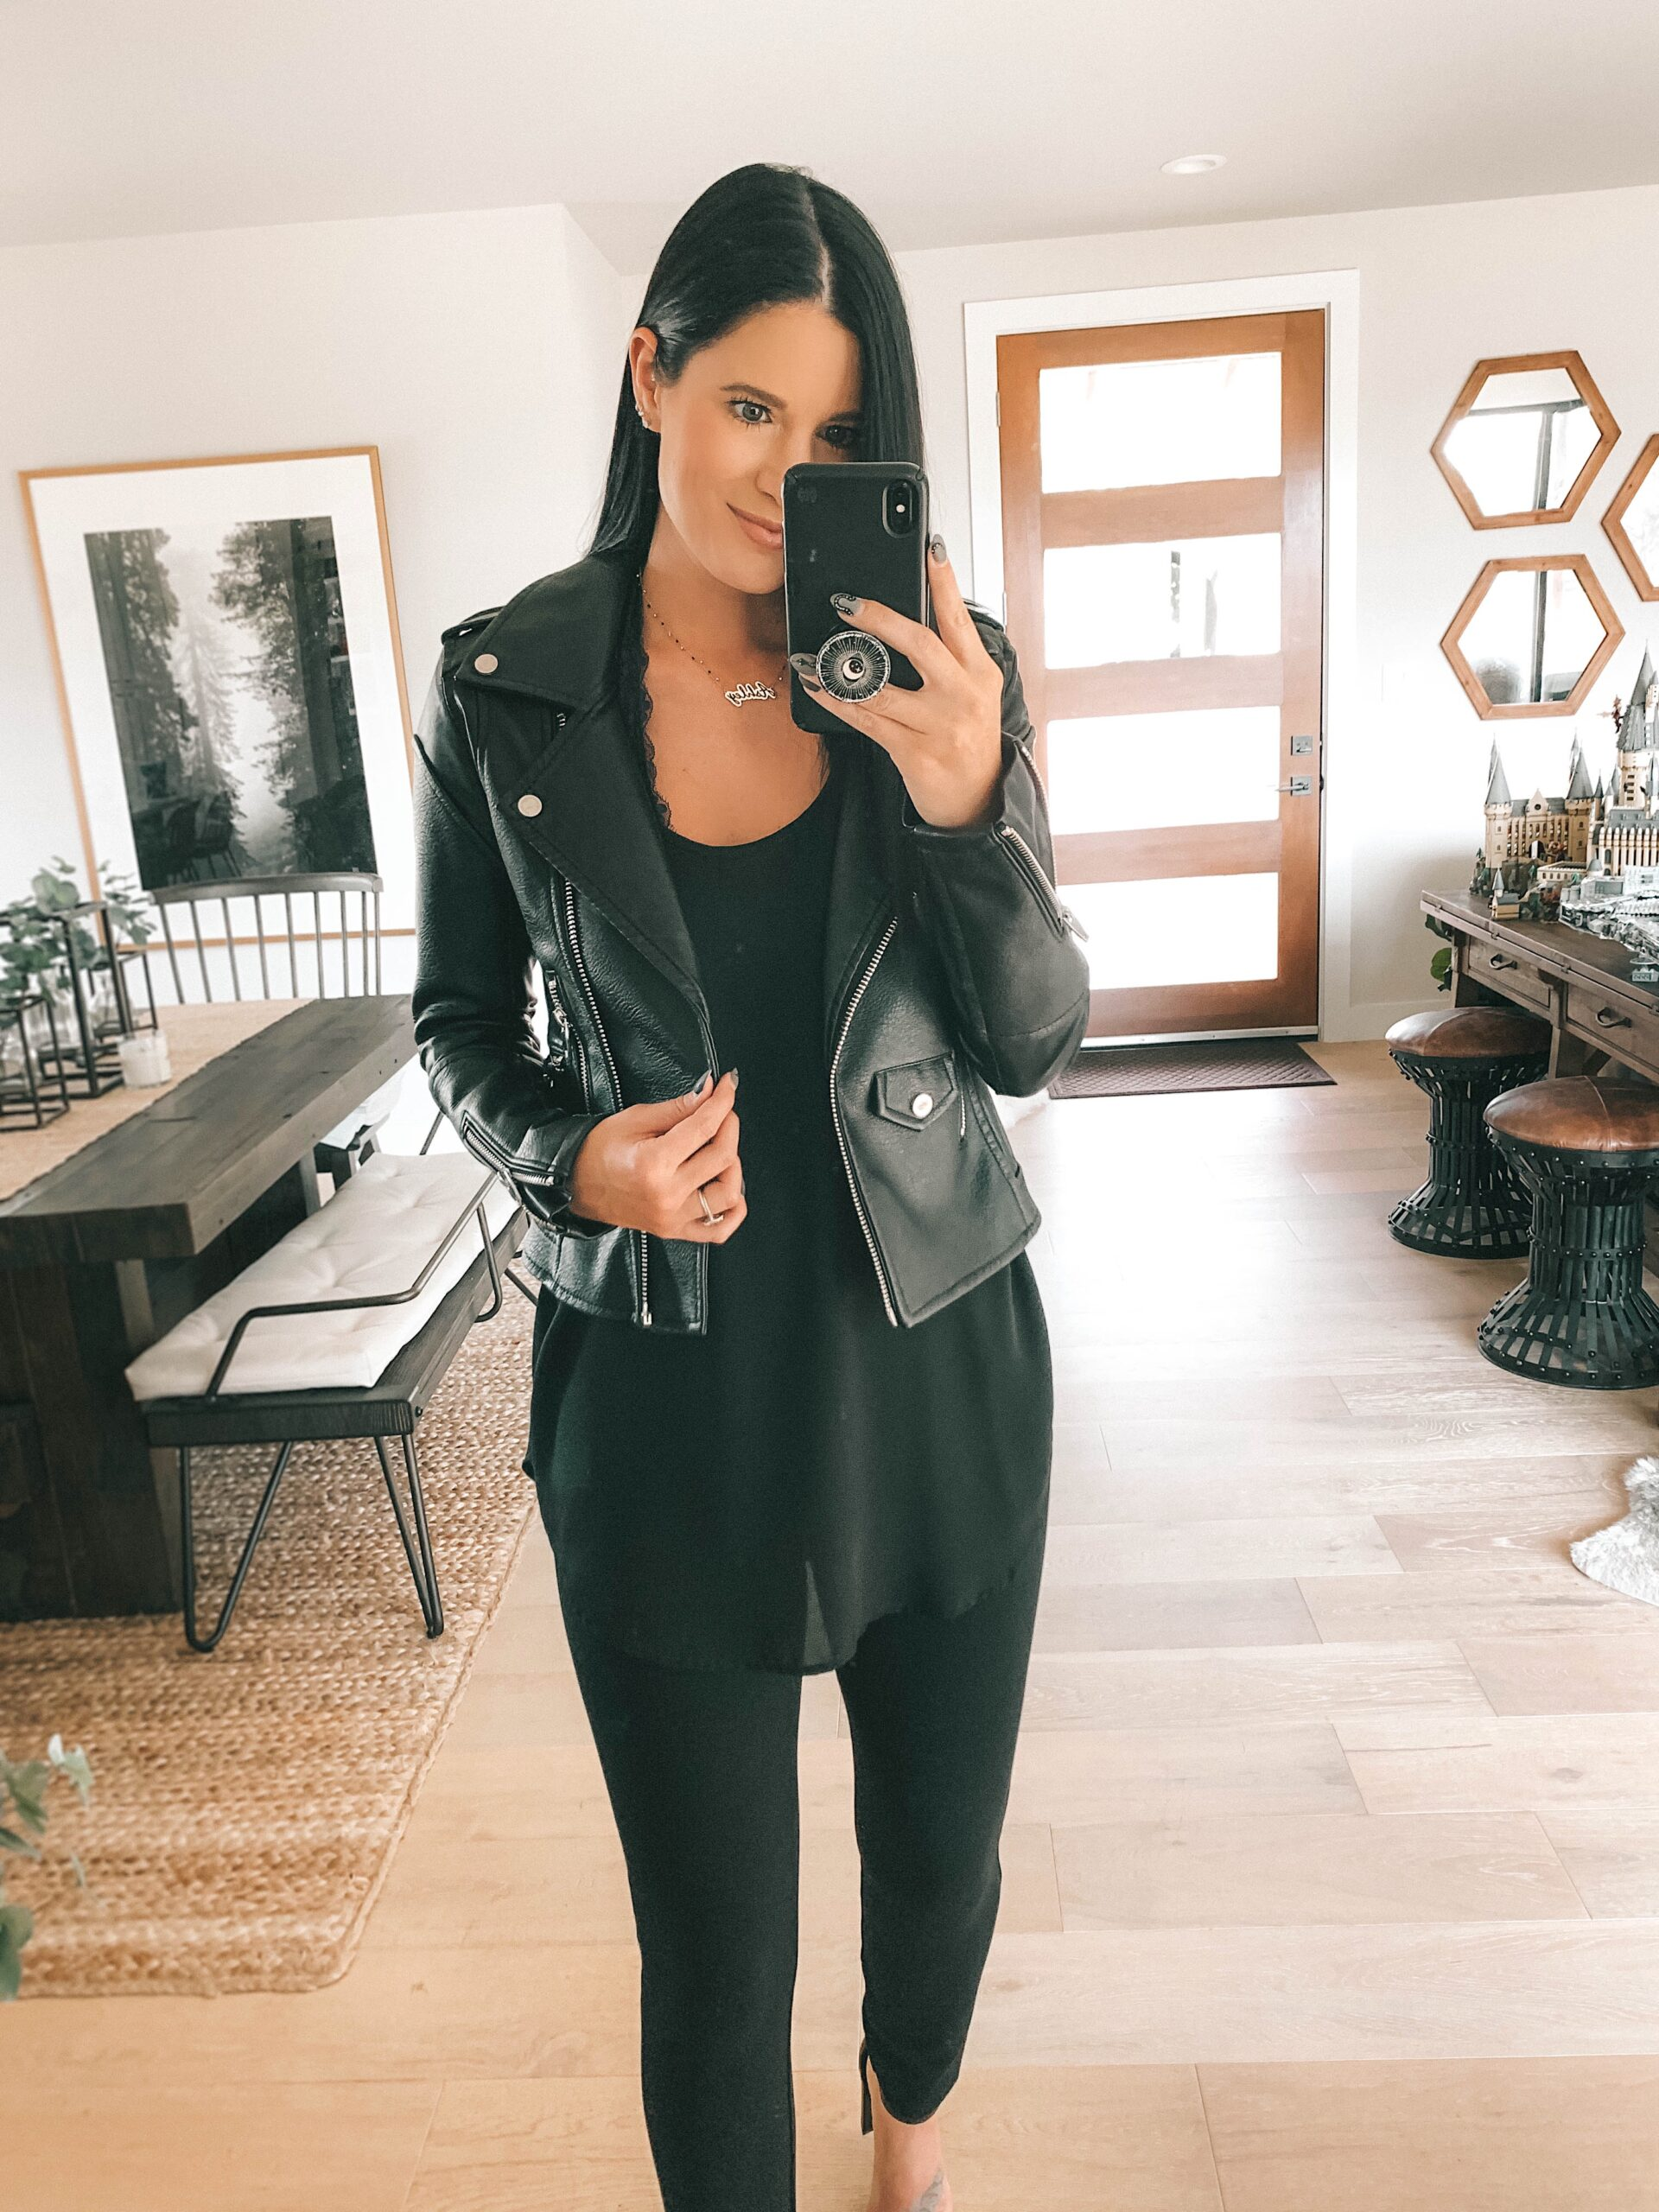 Nordstrom Anniversary Sale by popular Austin fashion blog, Dressed to Kill: image of a woman wearing a black faux letter jacket, black top, and black leggings.